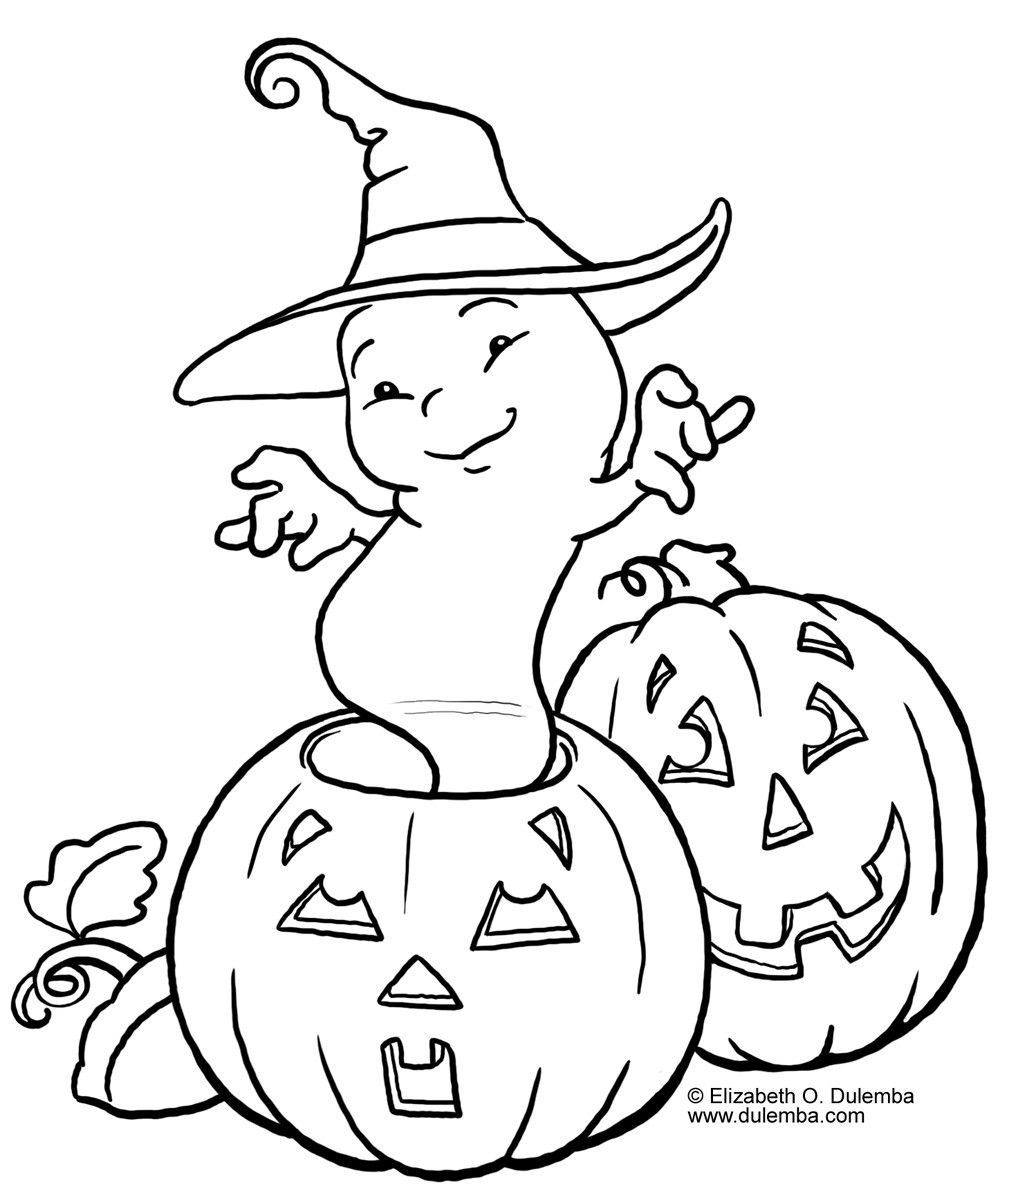 Halloween Pumpkin Colouring Pages For Kids – Printable ...